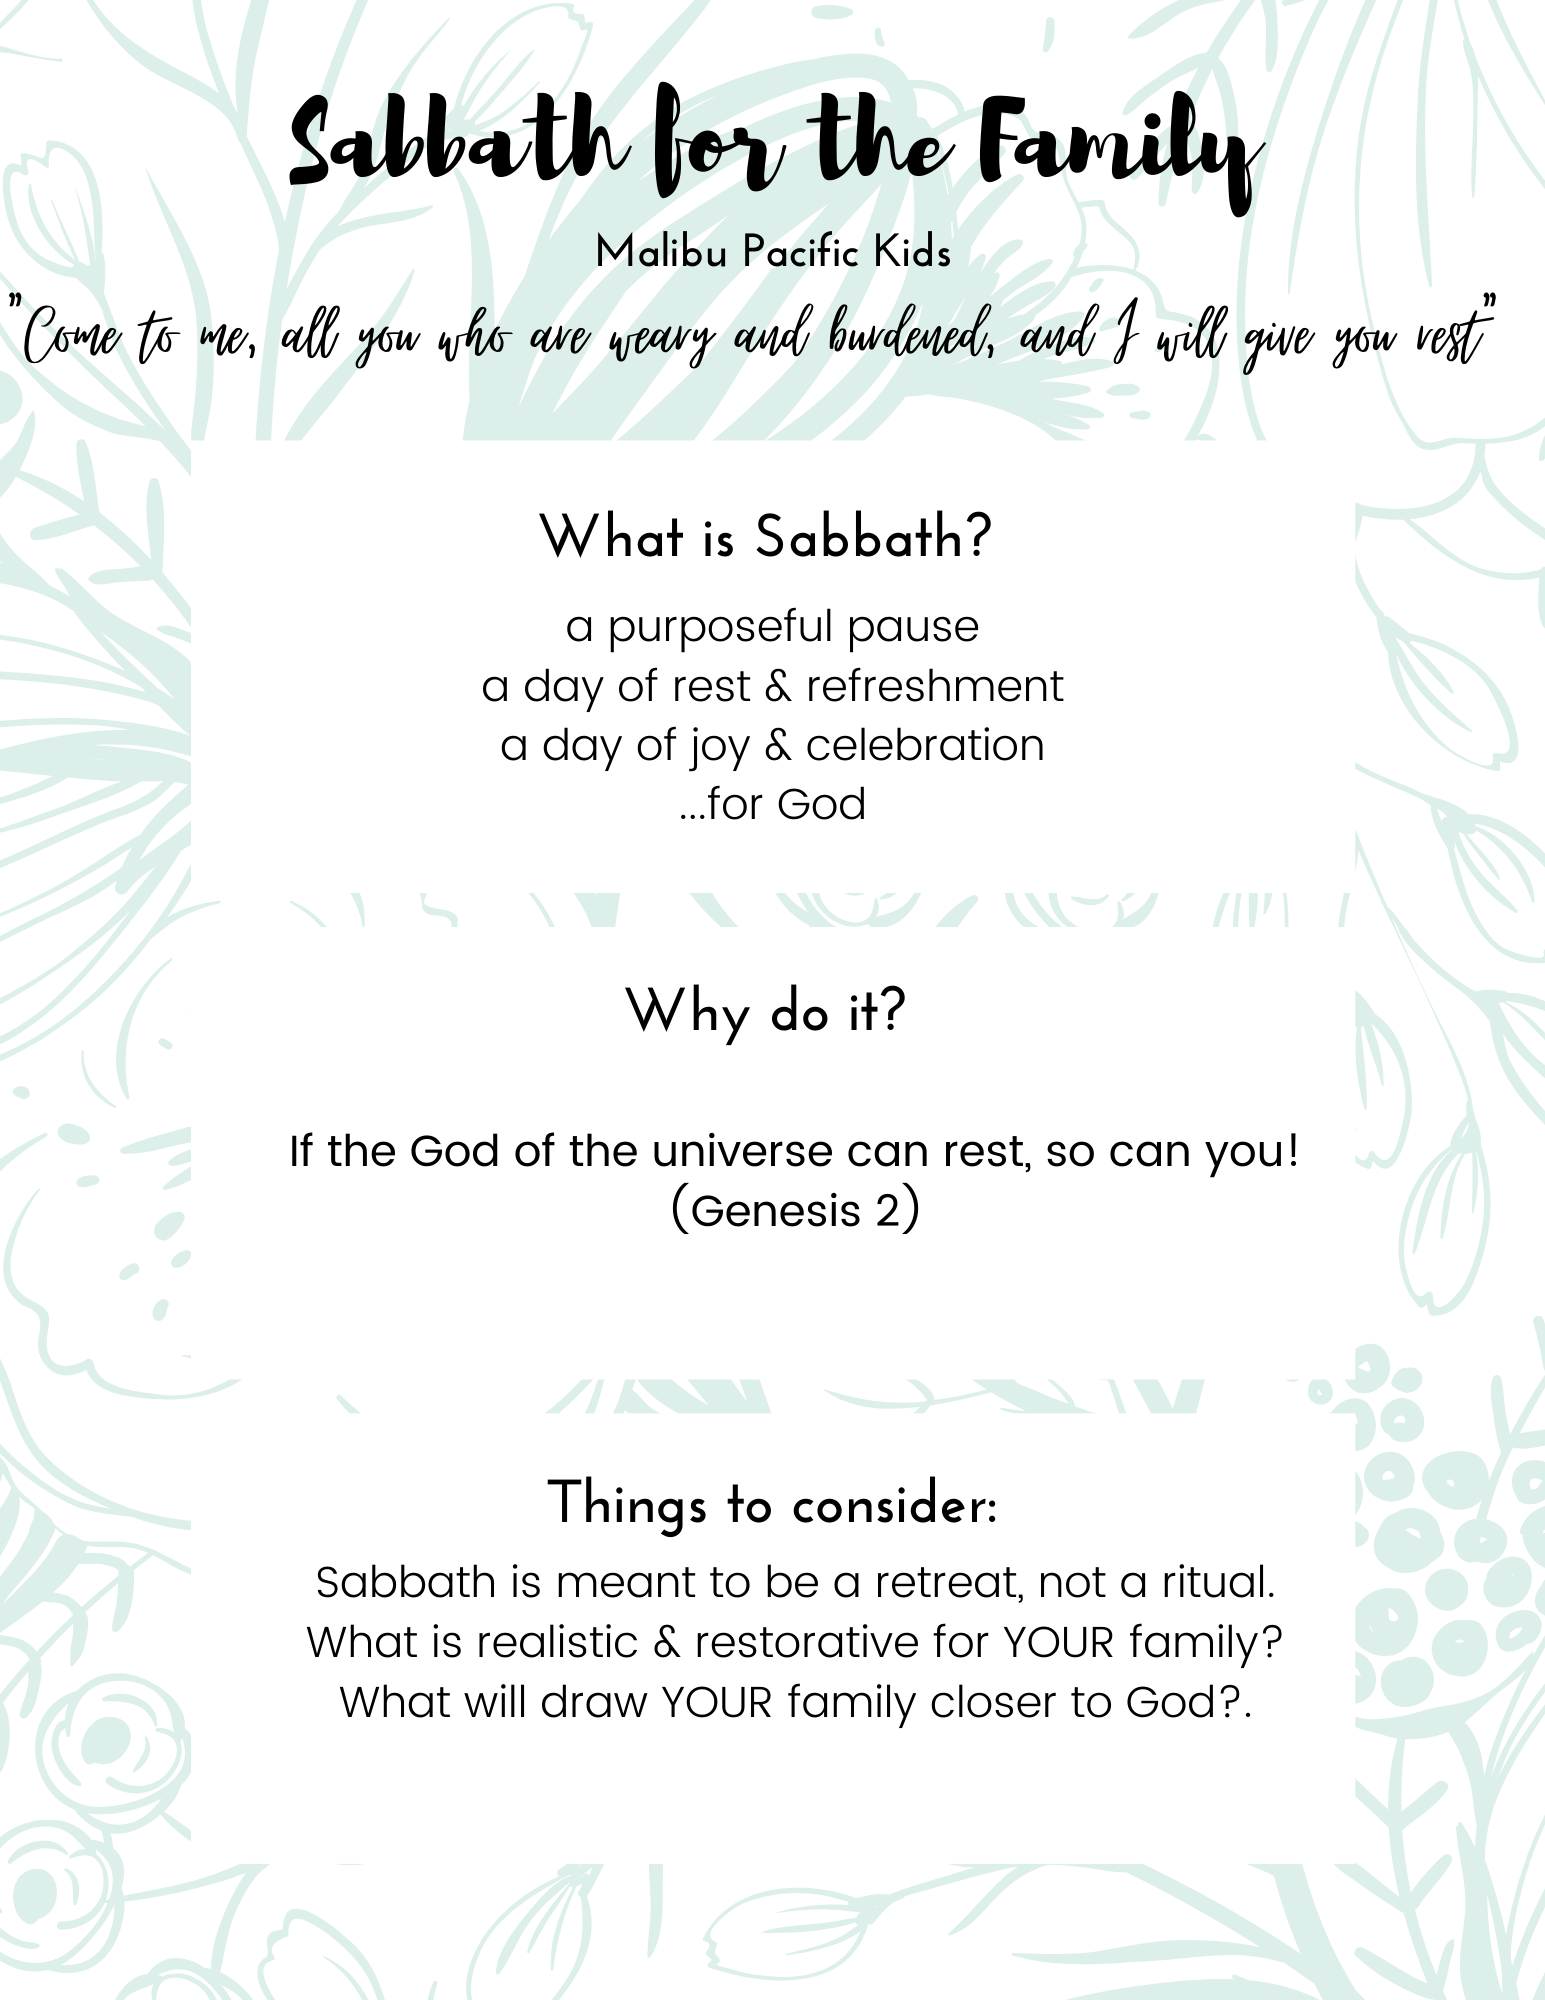 What is Sabbath